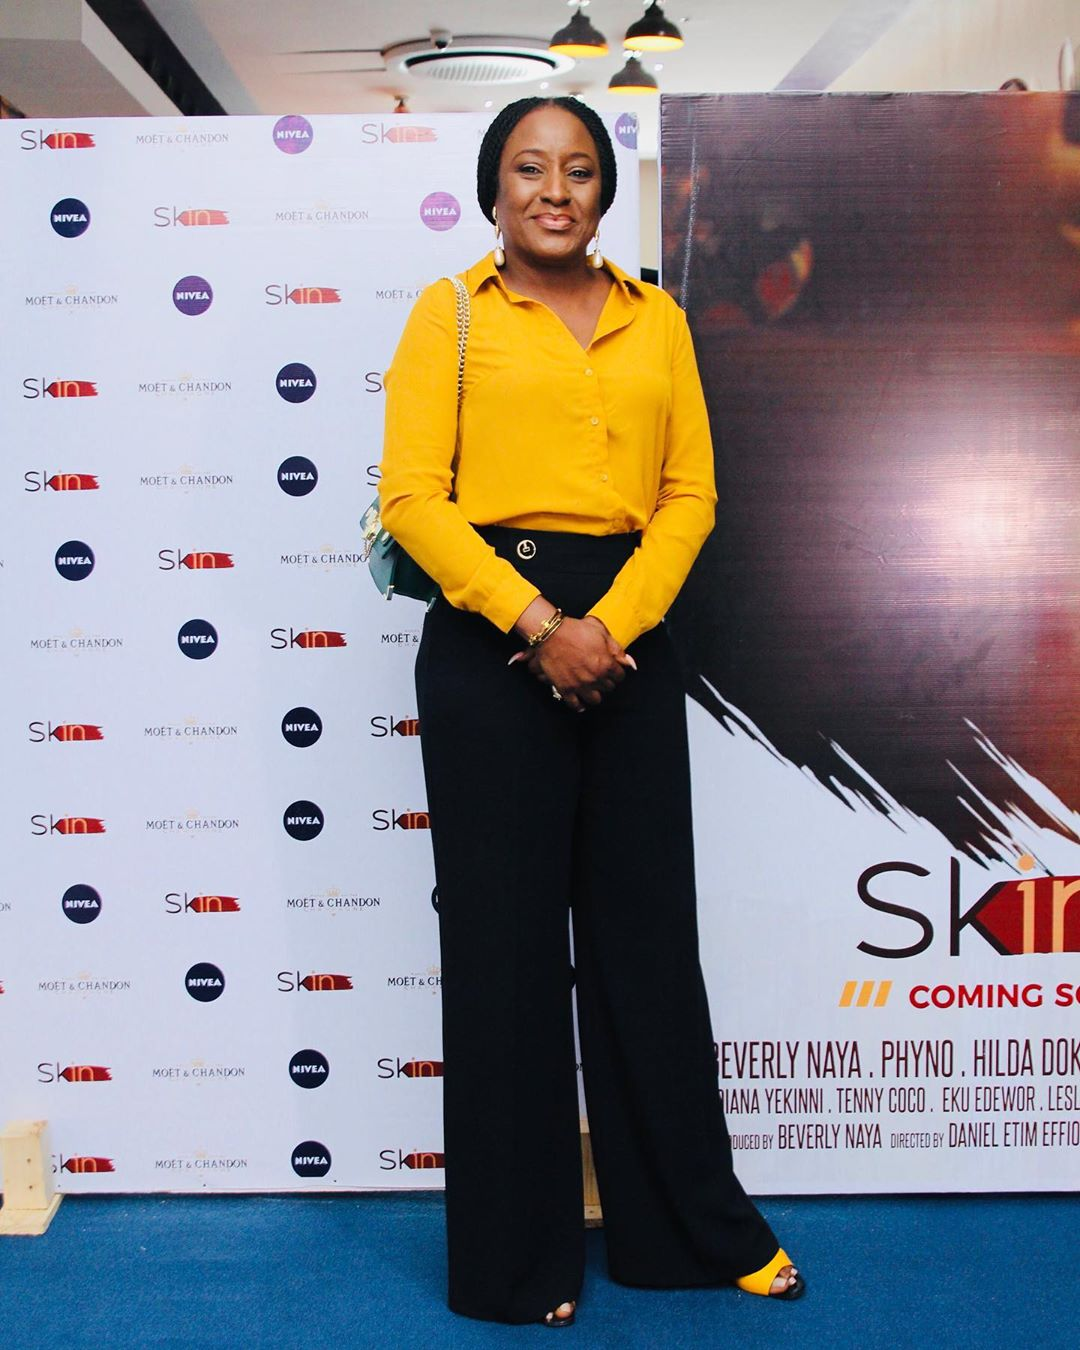 "Omotola Jalade-Ekeinde, Mo Abudu, others spotted at the Premiere of Beverly Naya's Documentary ""Skin"""